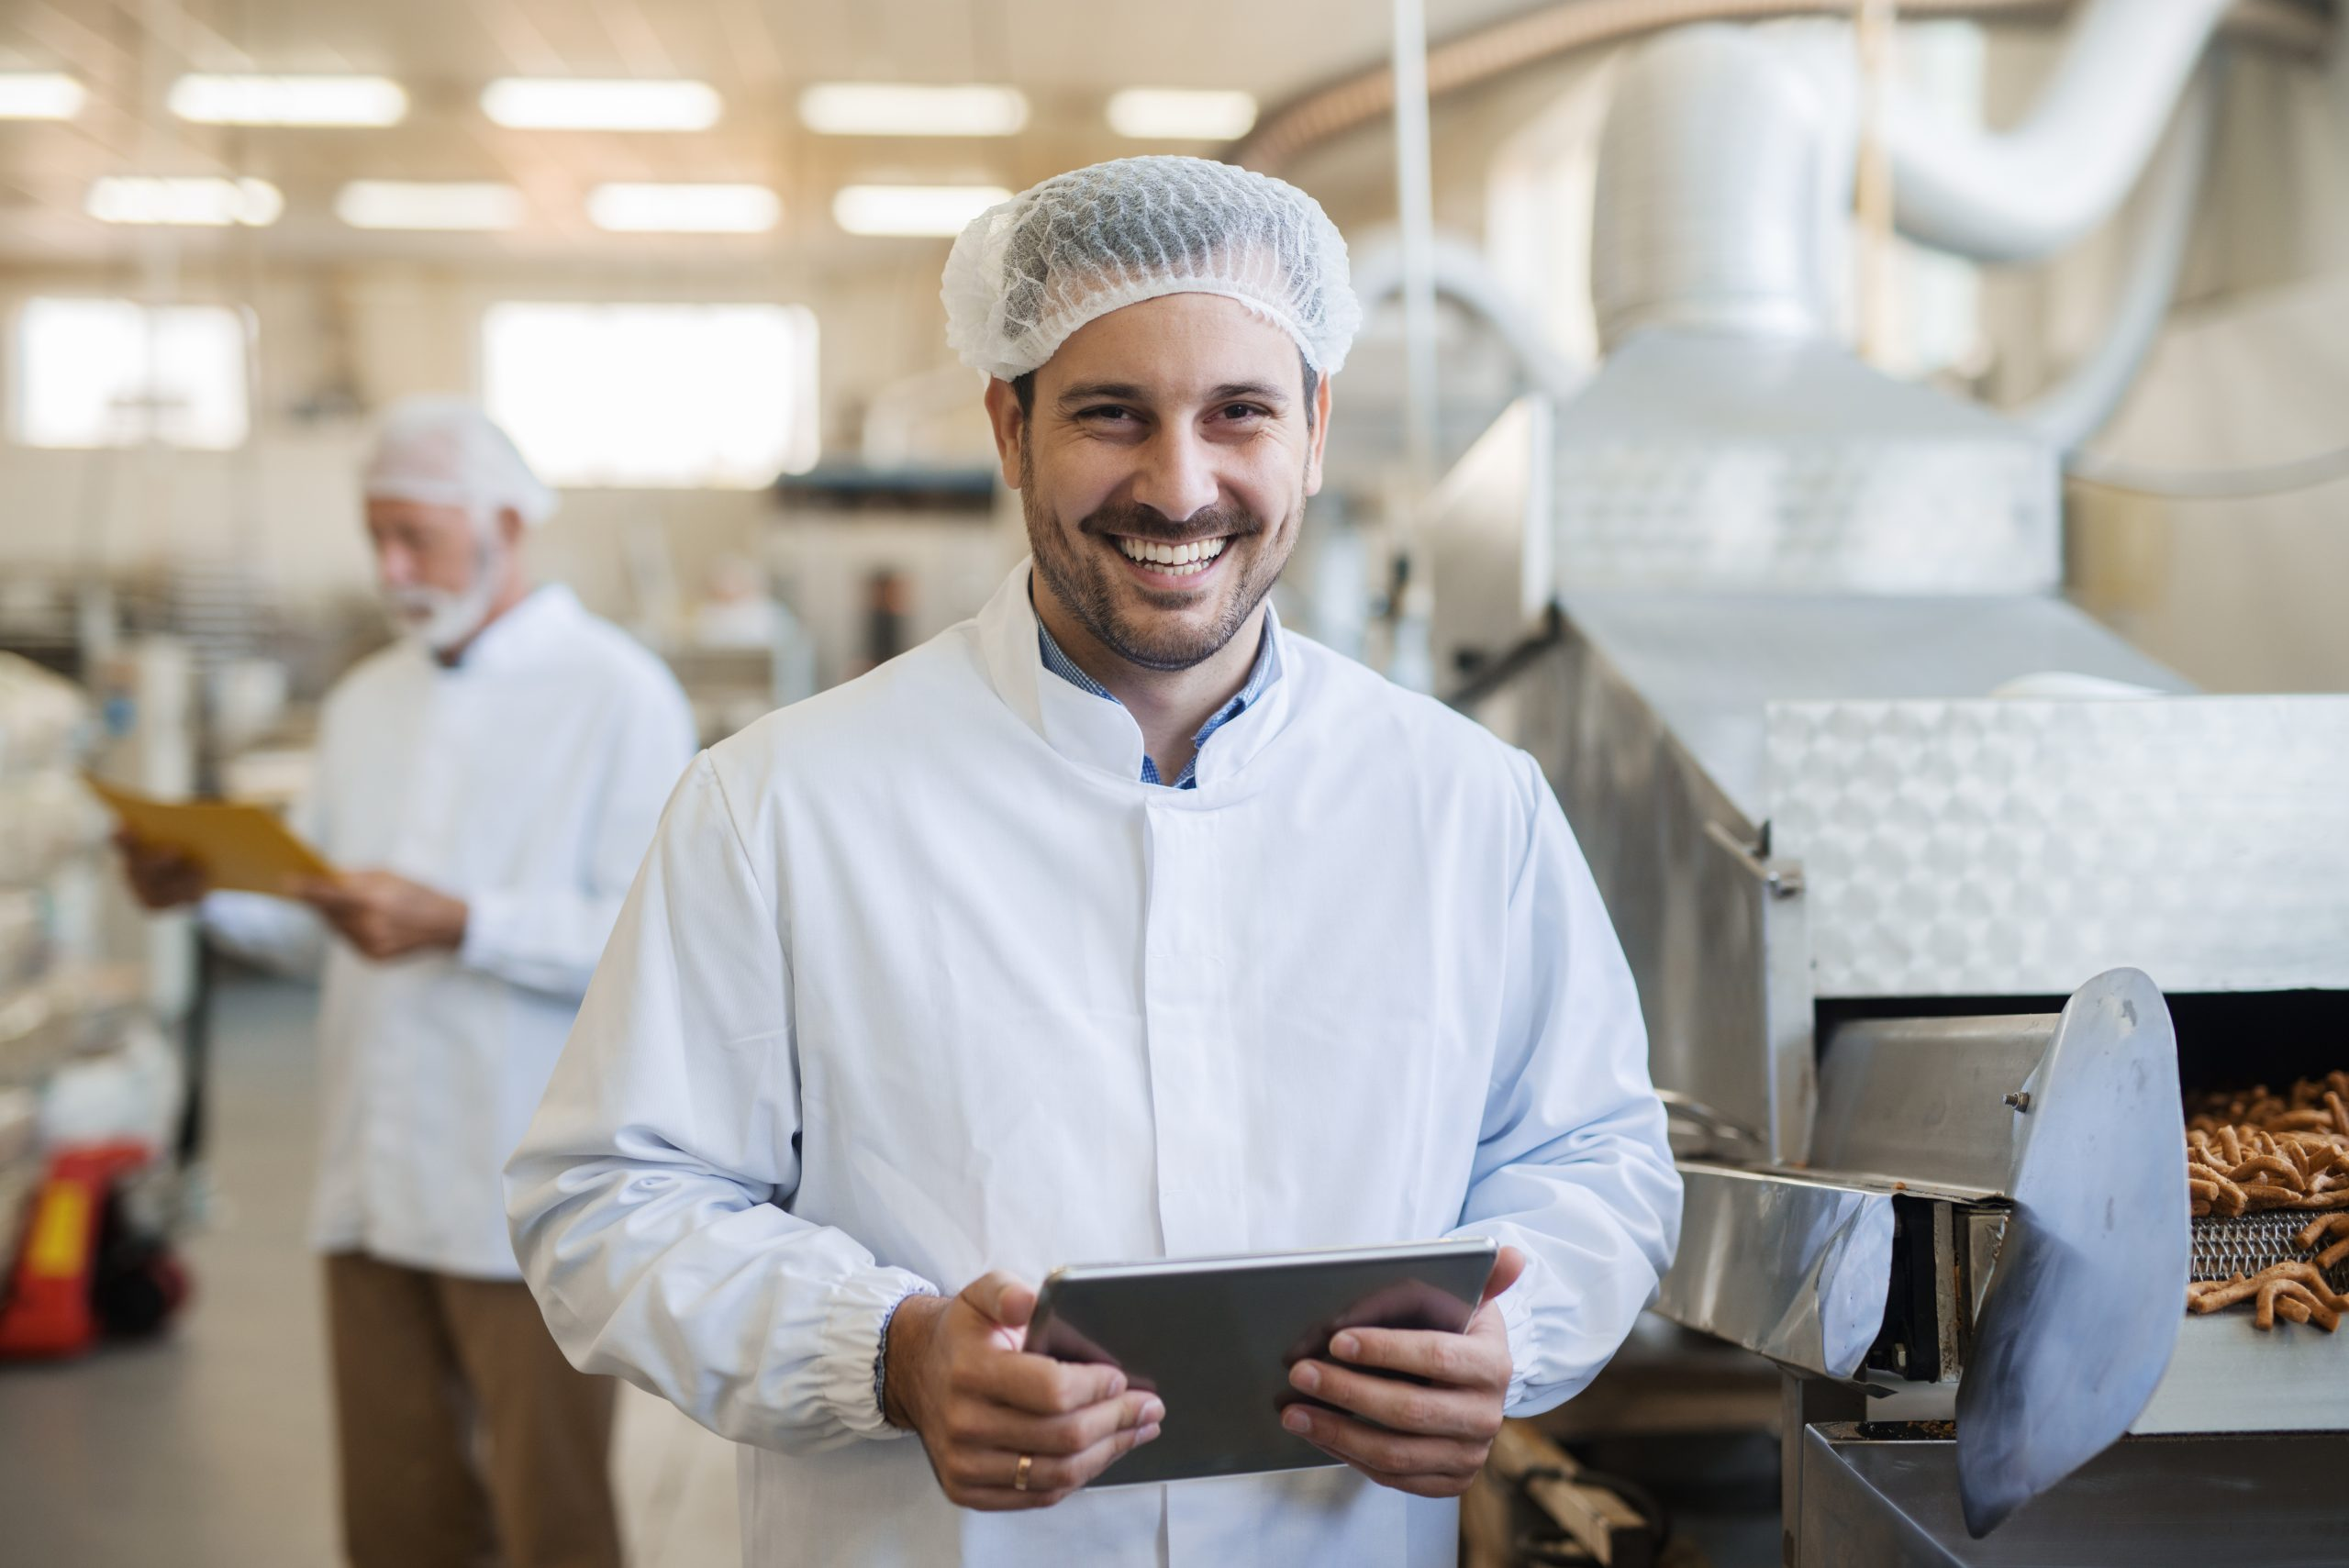 A man in a professional kitchen wearing white overalls and a hair net smiling holding a tablet computer.